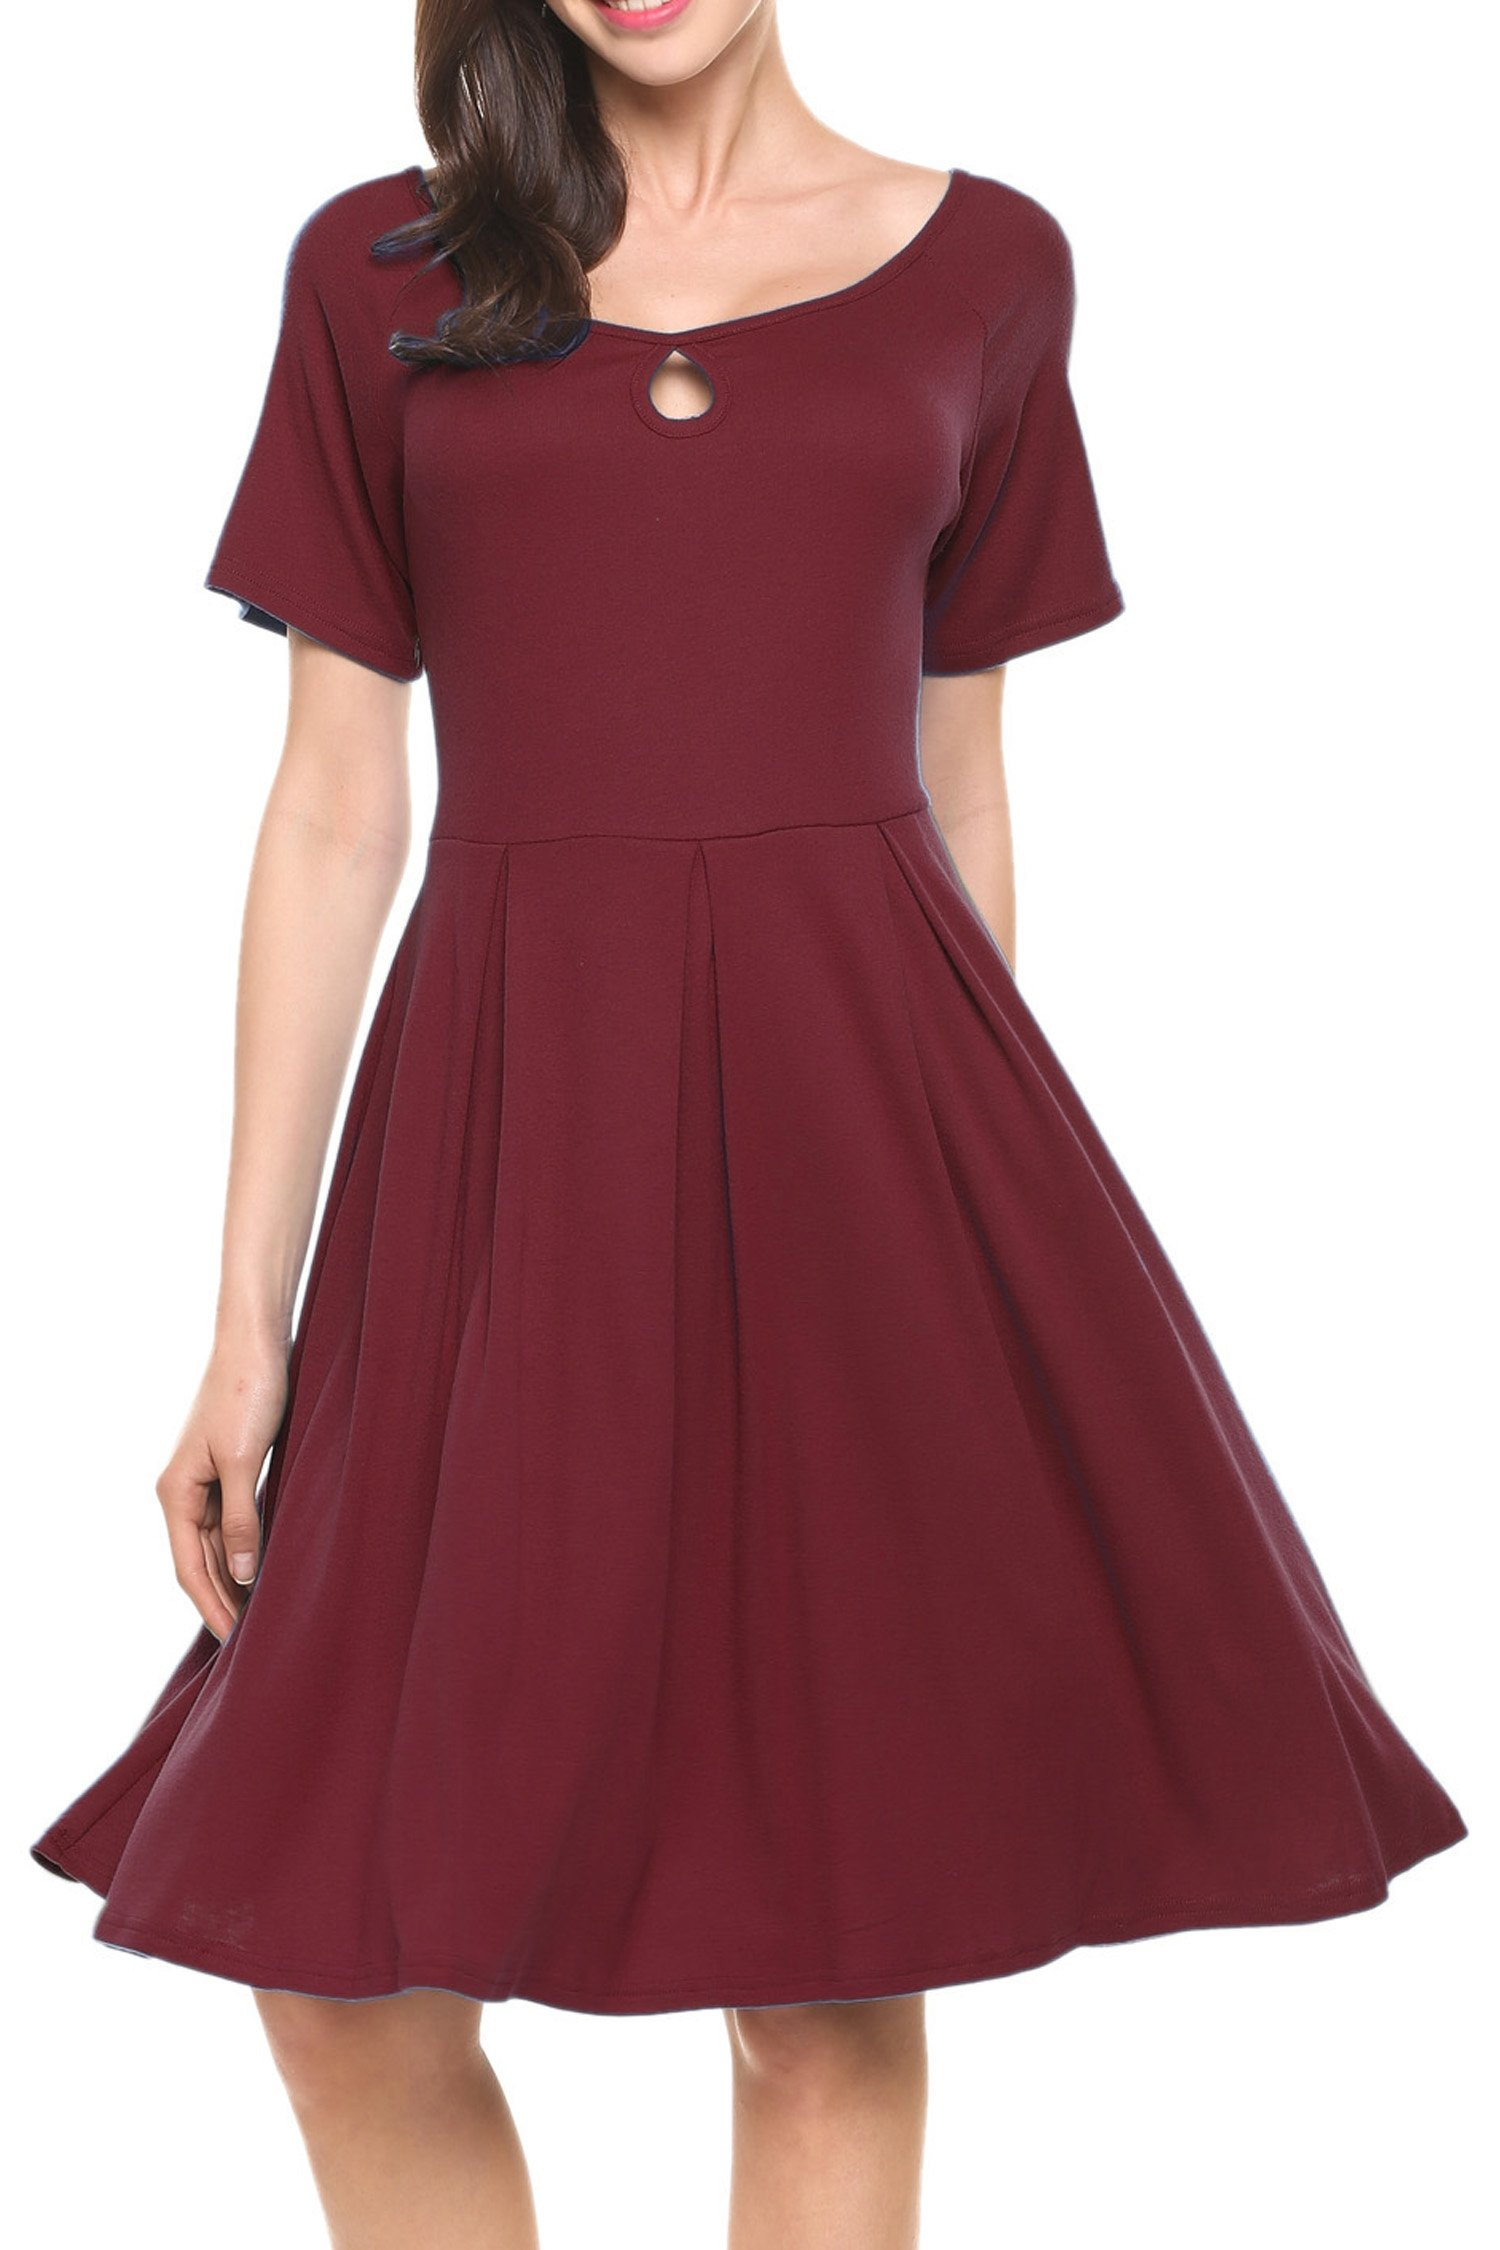 Hotouch Women's Hepburn Style Boat-Neck A Line Swing Dress Wine Red XL by Hotouch